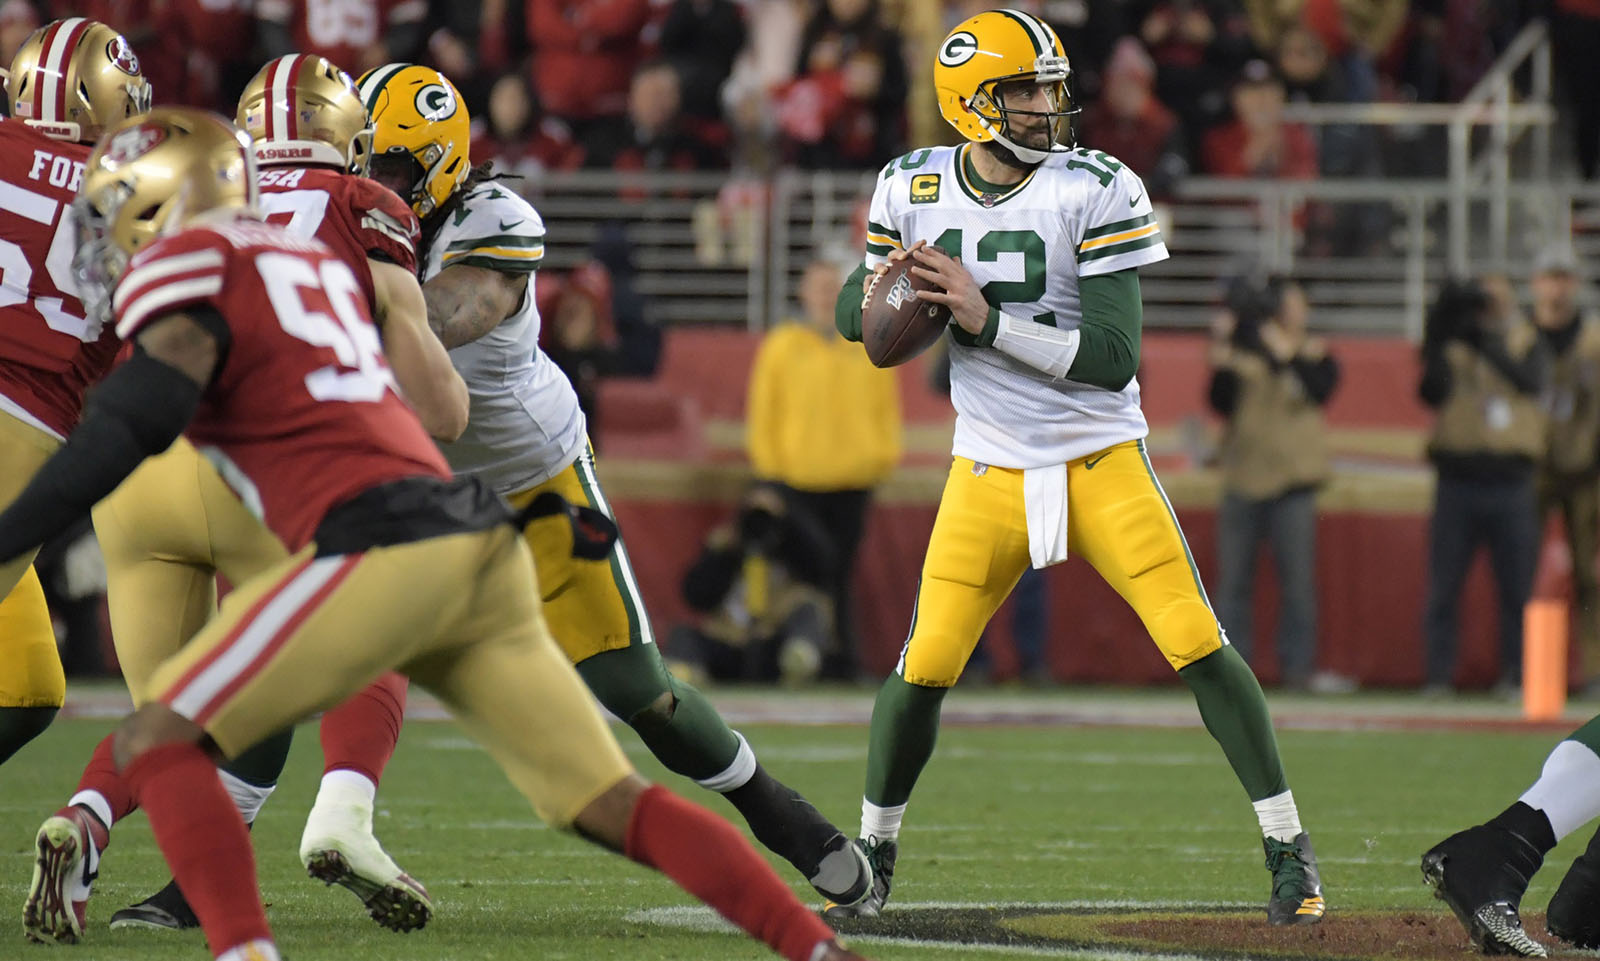 pi-fsw-packers-49ers-nfc-1-championship-aaron-rodgers-011920